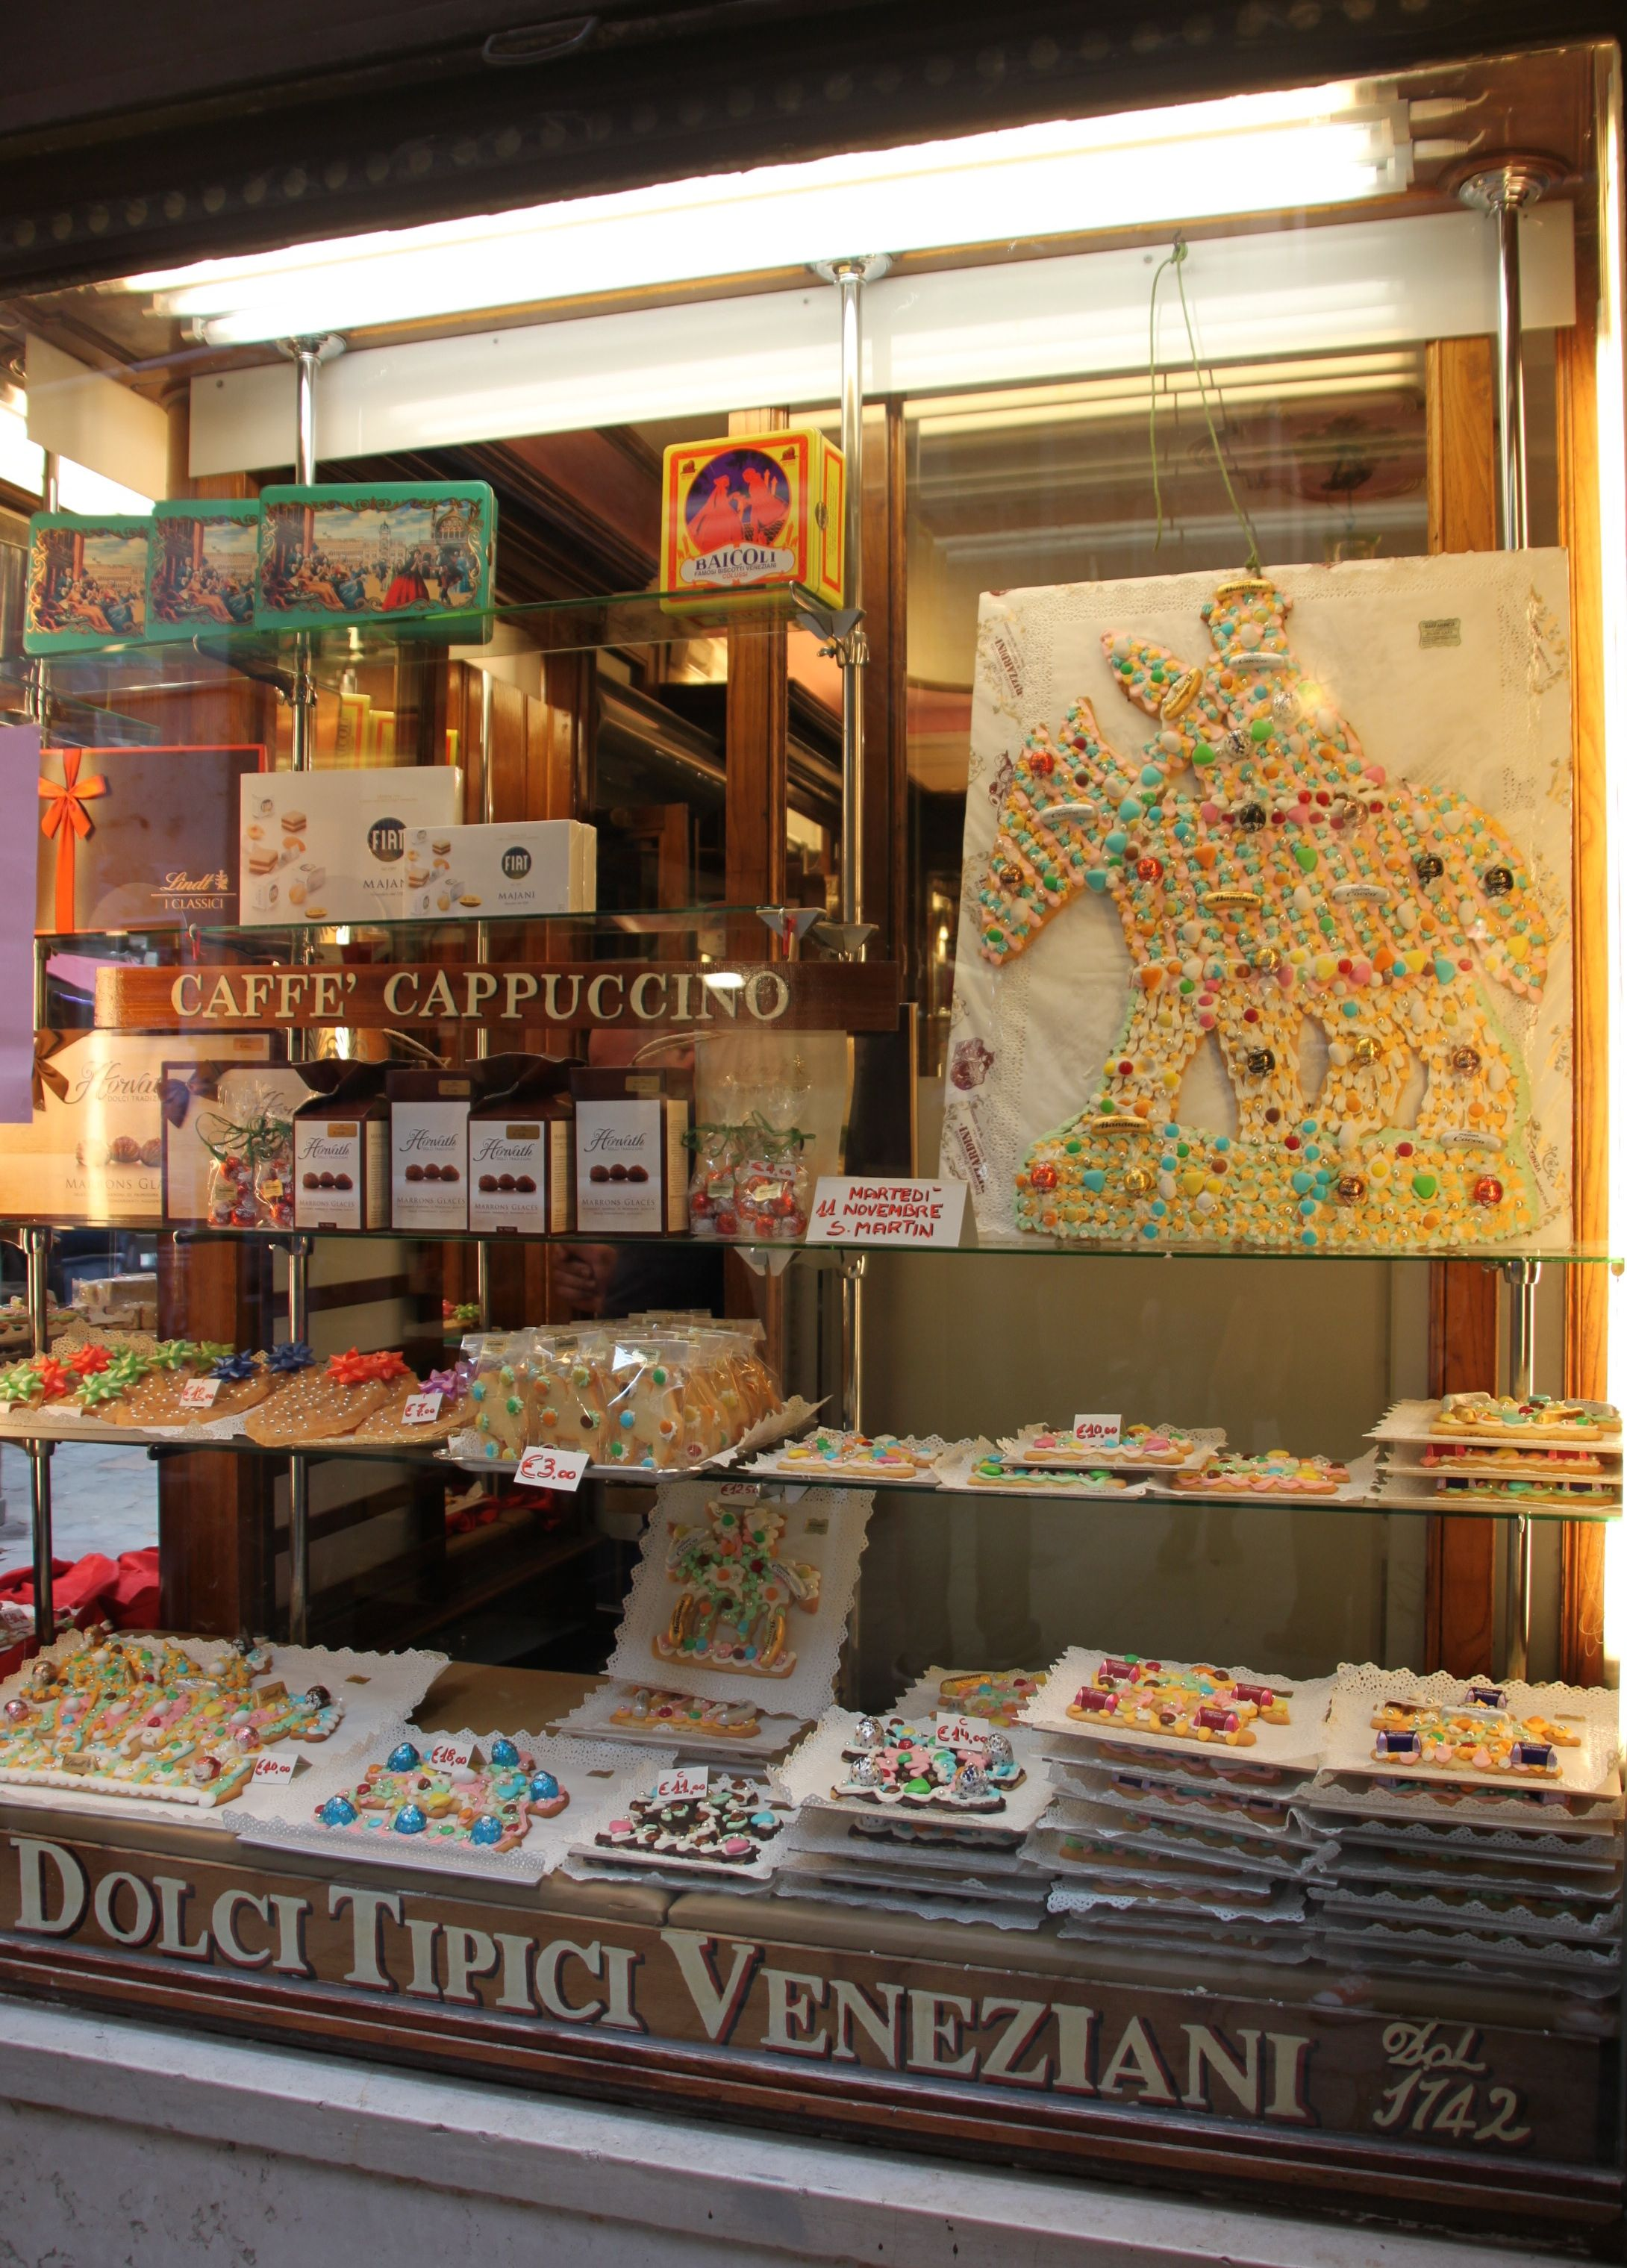 Pasticceria Rizzadini's windows are full of San Martino biscuits